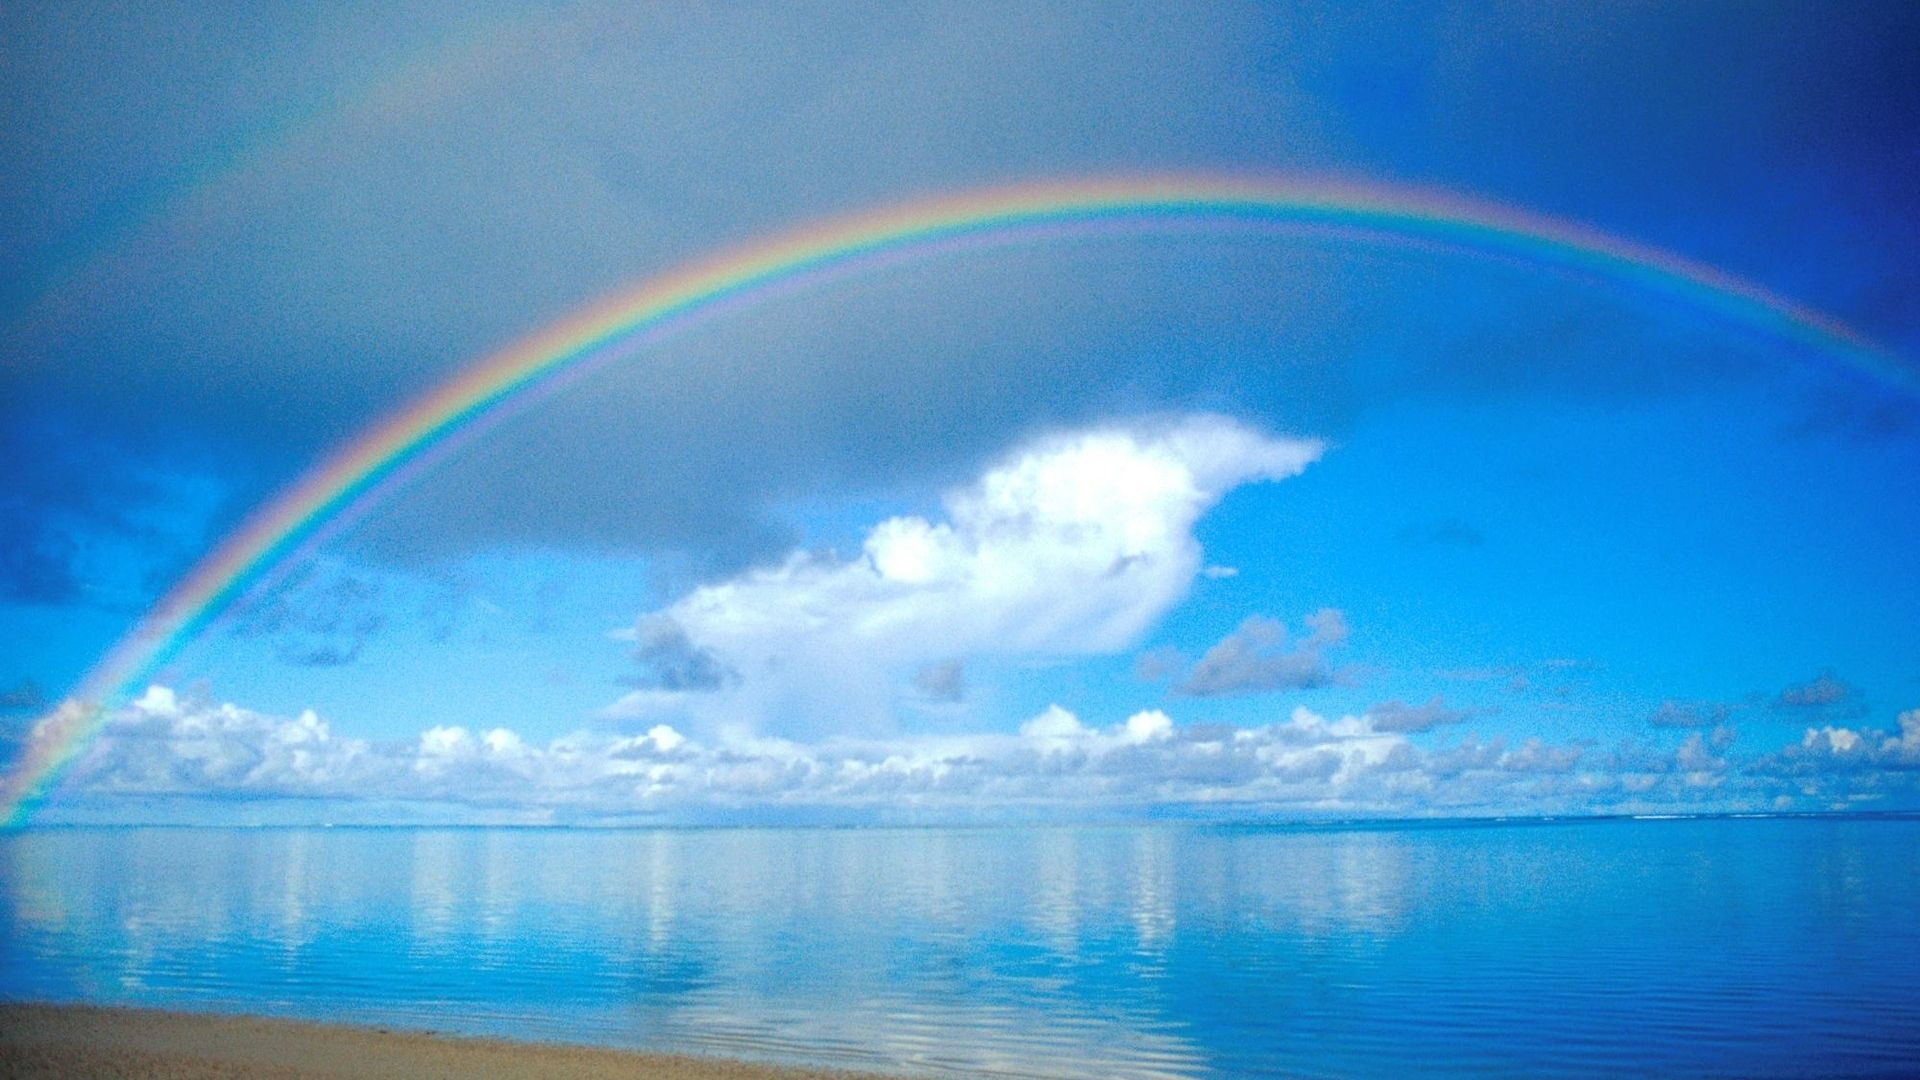 Rainbow Sky Wallpapers Top Free Rainbow Sky Backgrounds Wallpaperaccess